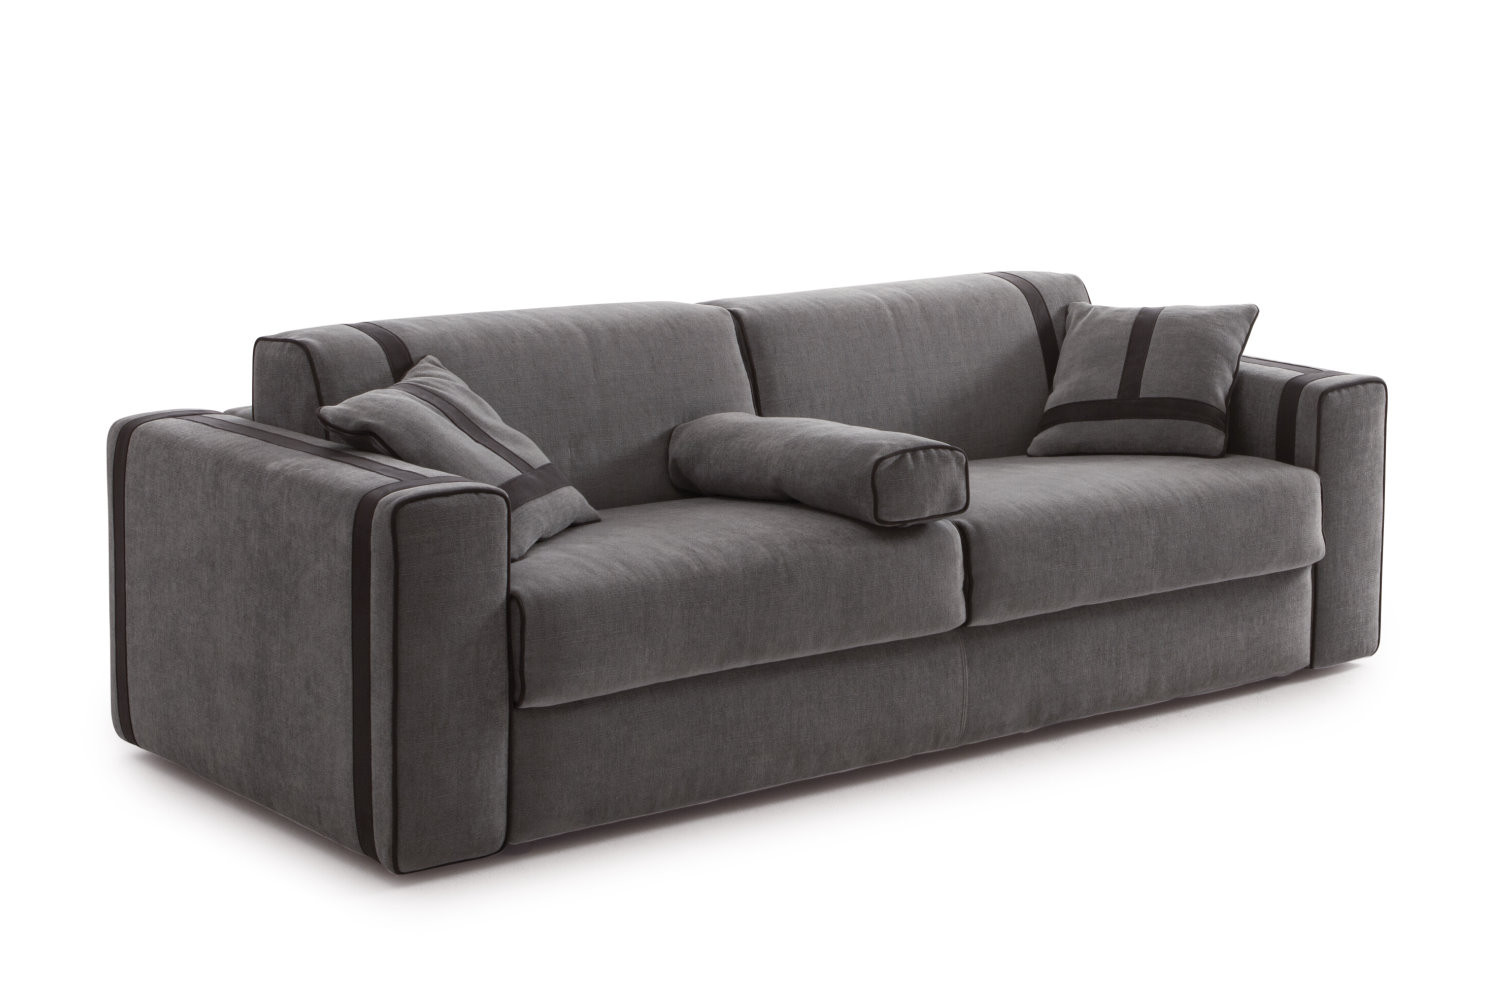 Ellington Sofa With Headrest Cushions